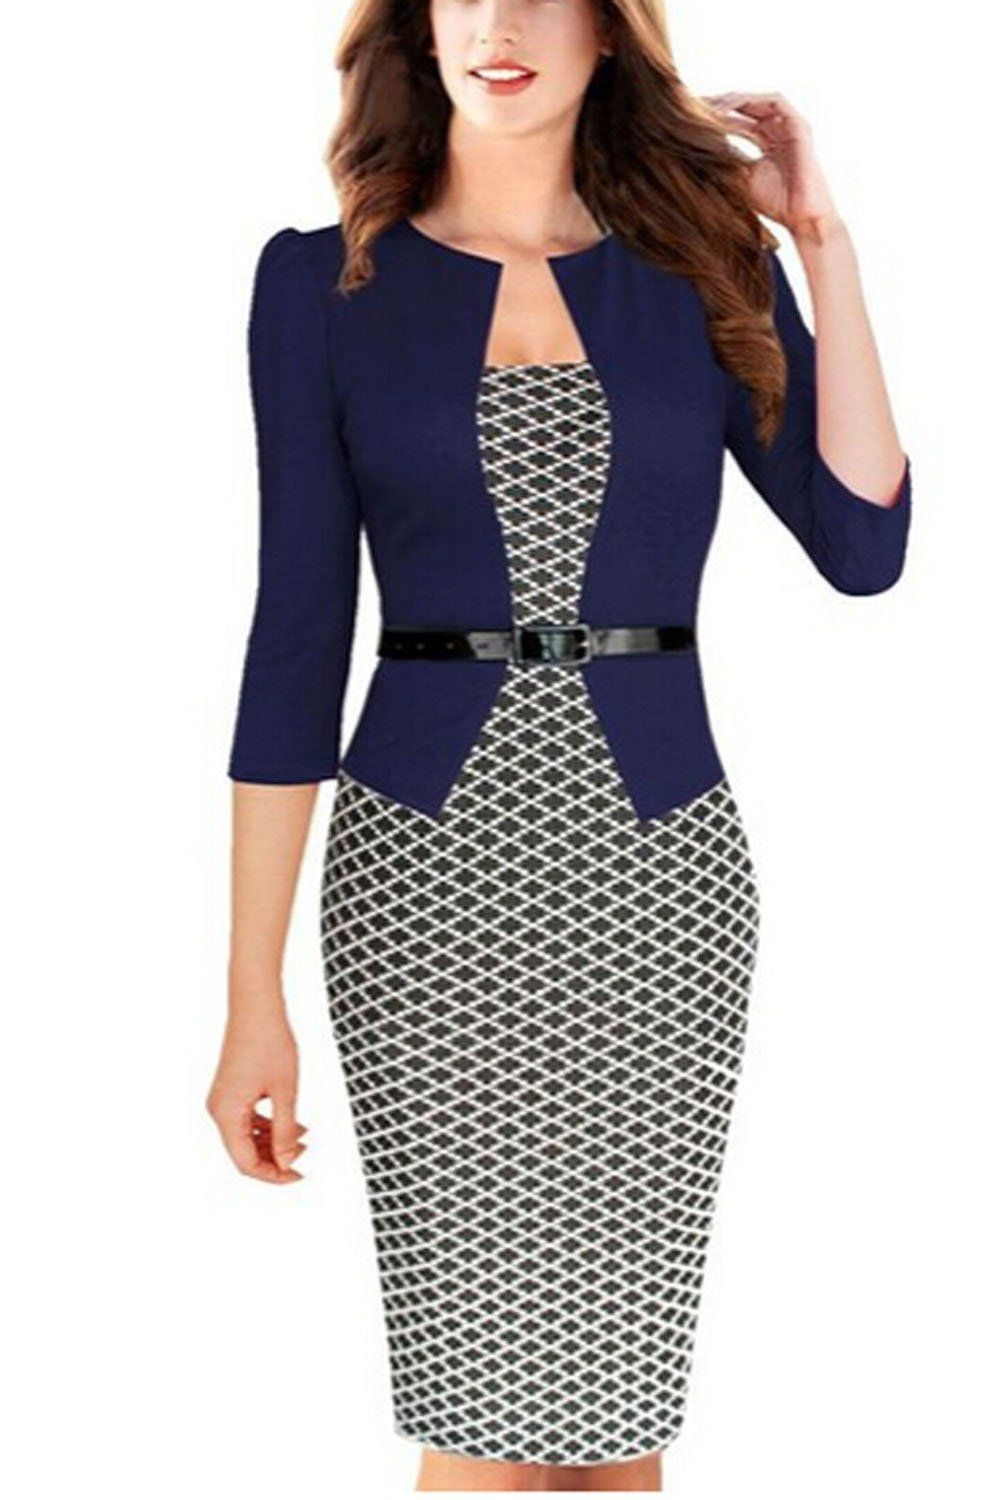 0887c7c72f16 Viwenni Women Colorblock V Neck Business Party Bodycon Dress at Amazon Women's  Clothing store: